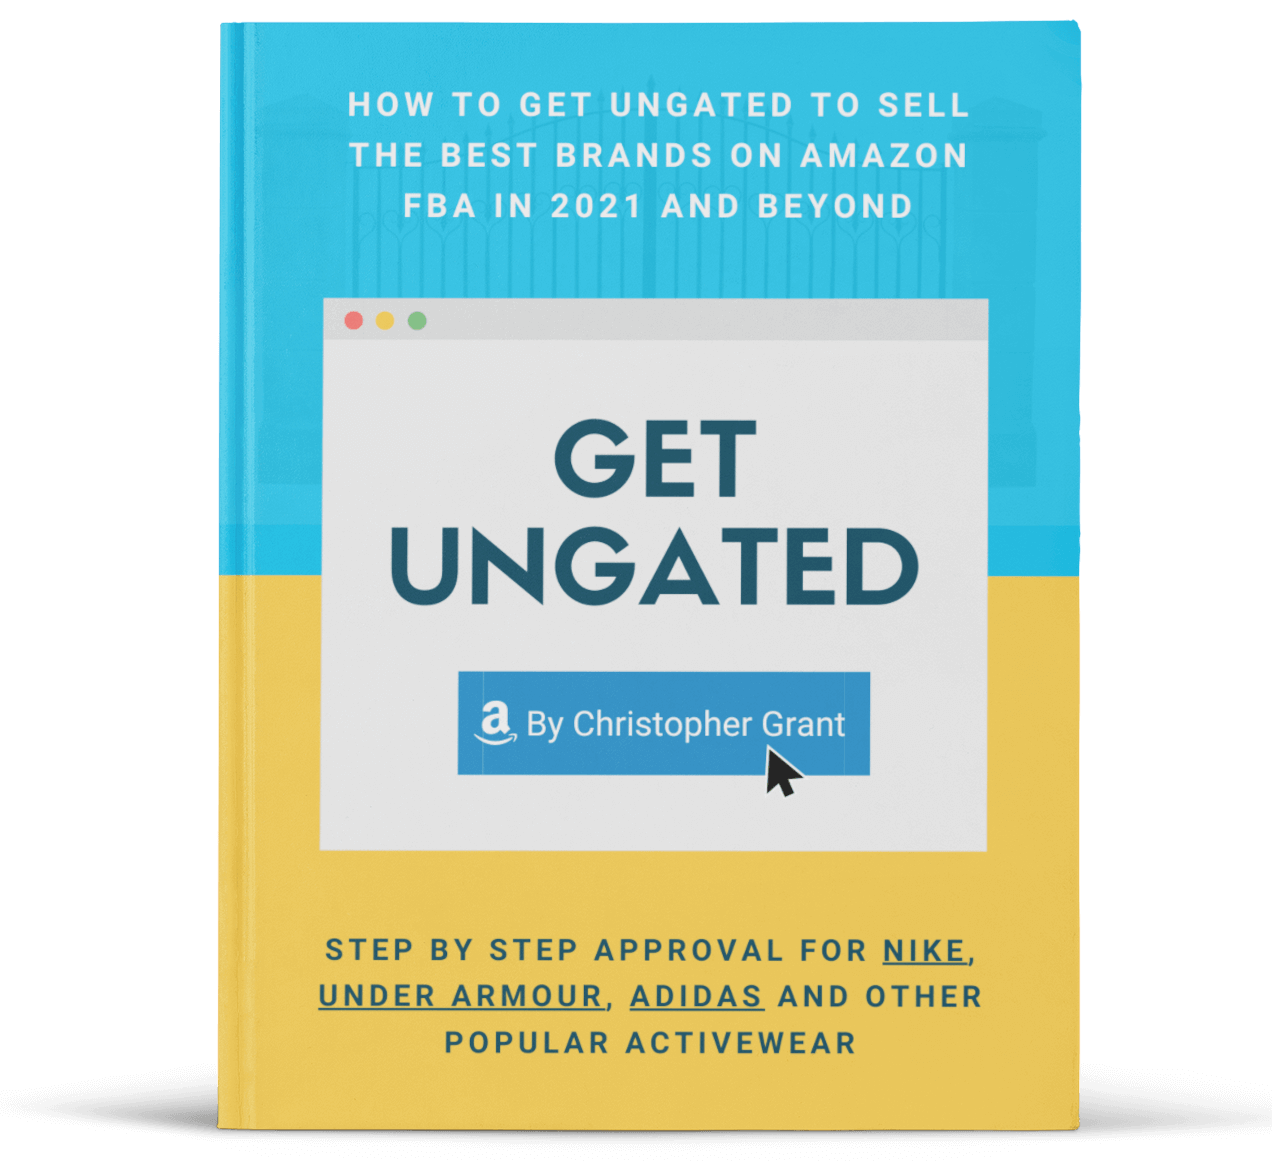 Get Ungated Guide